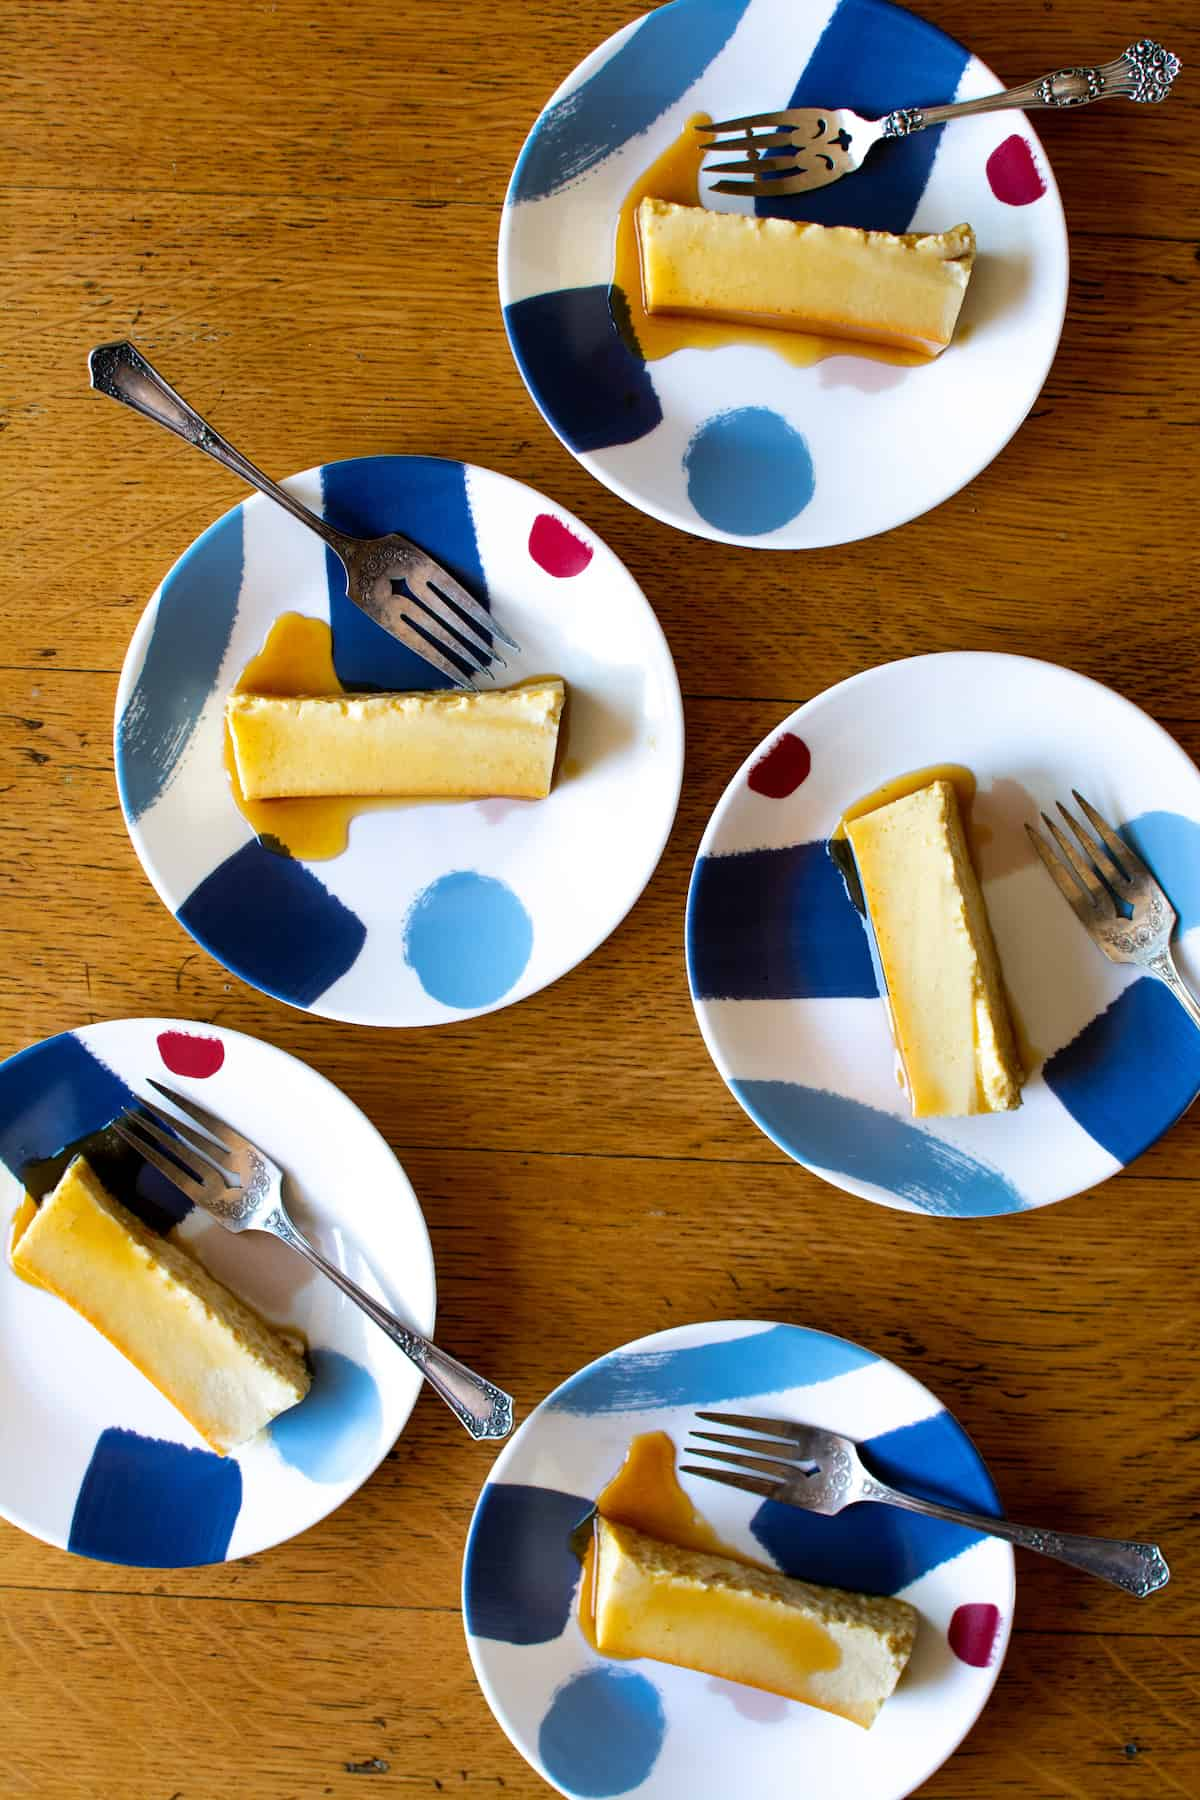 5 blue and white dessert plates with pieces of flan on them and forks on each plate.